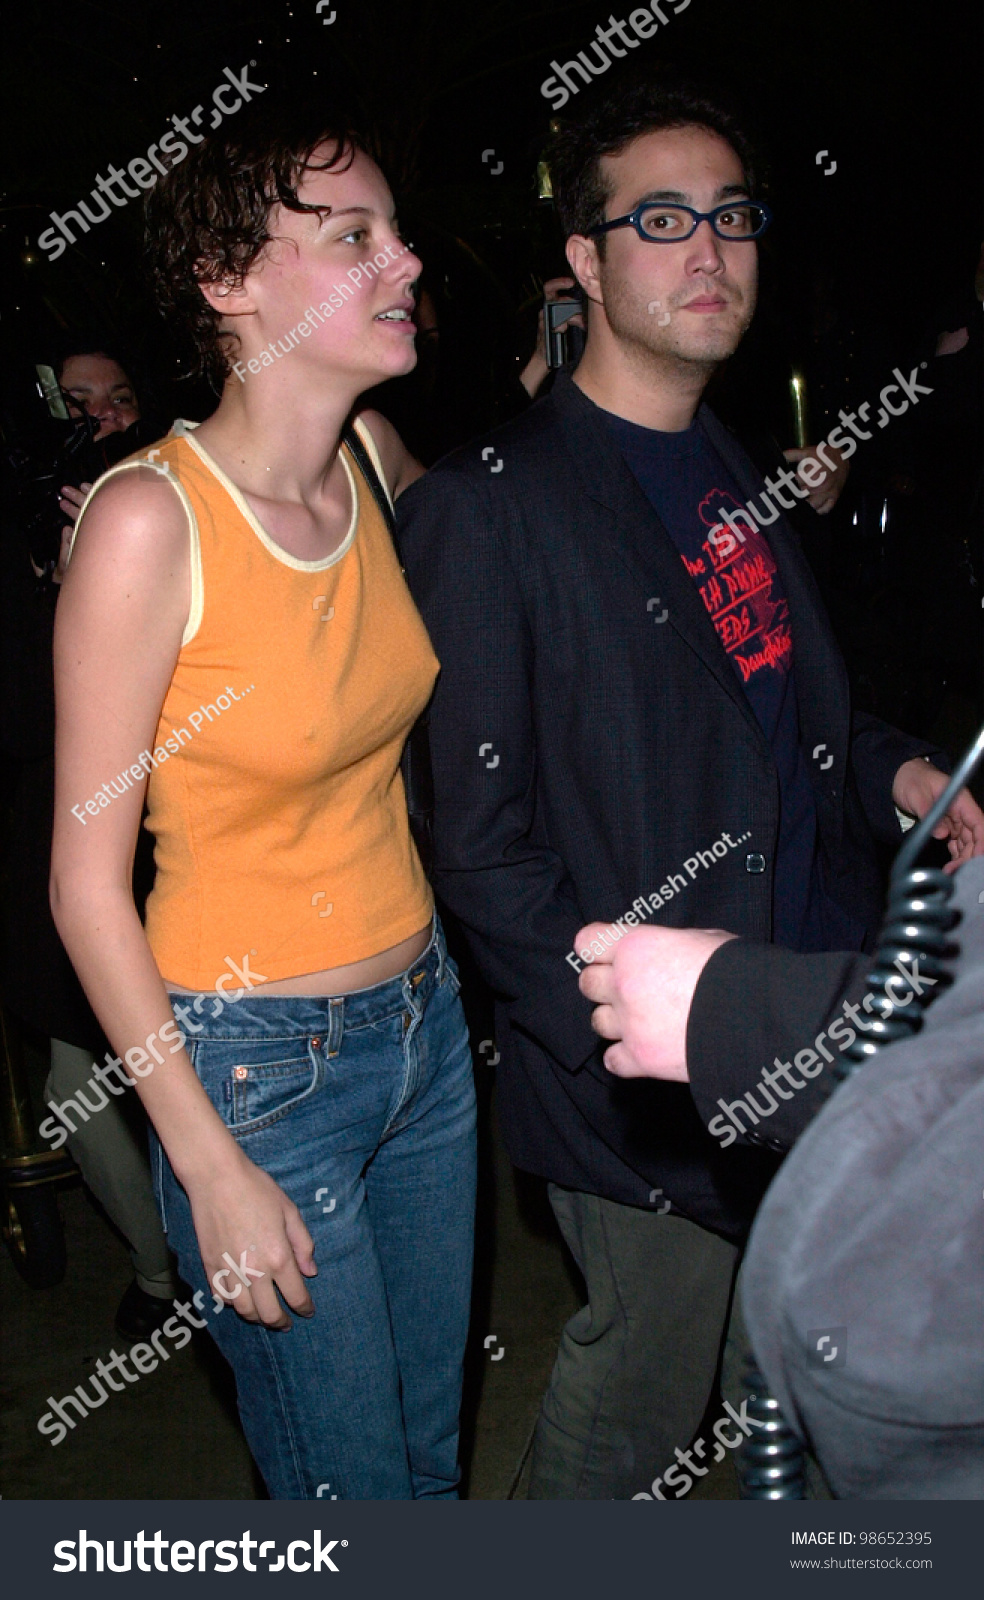 SEAN LENNON Son Of The Late John Lennon With Actress BIJOU PHILLIPS At